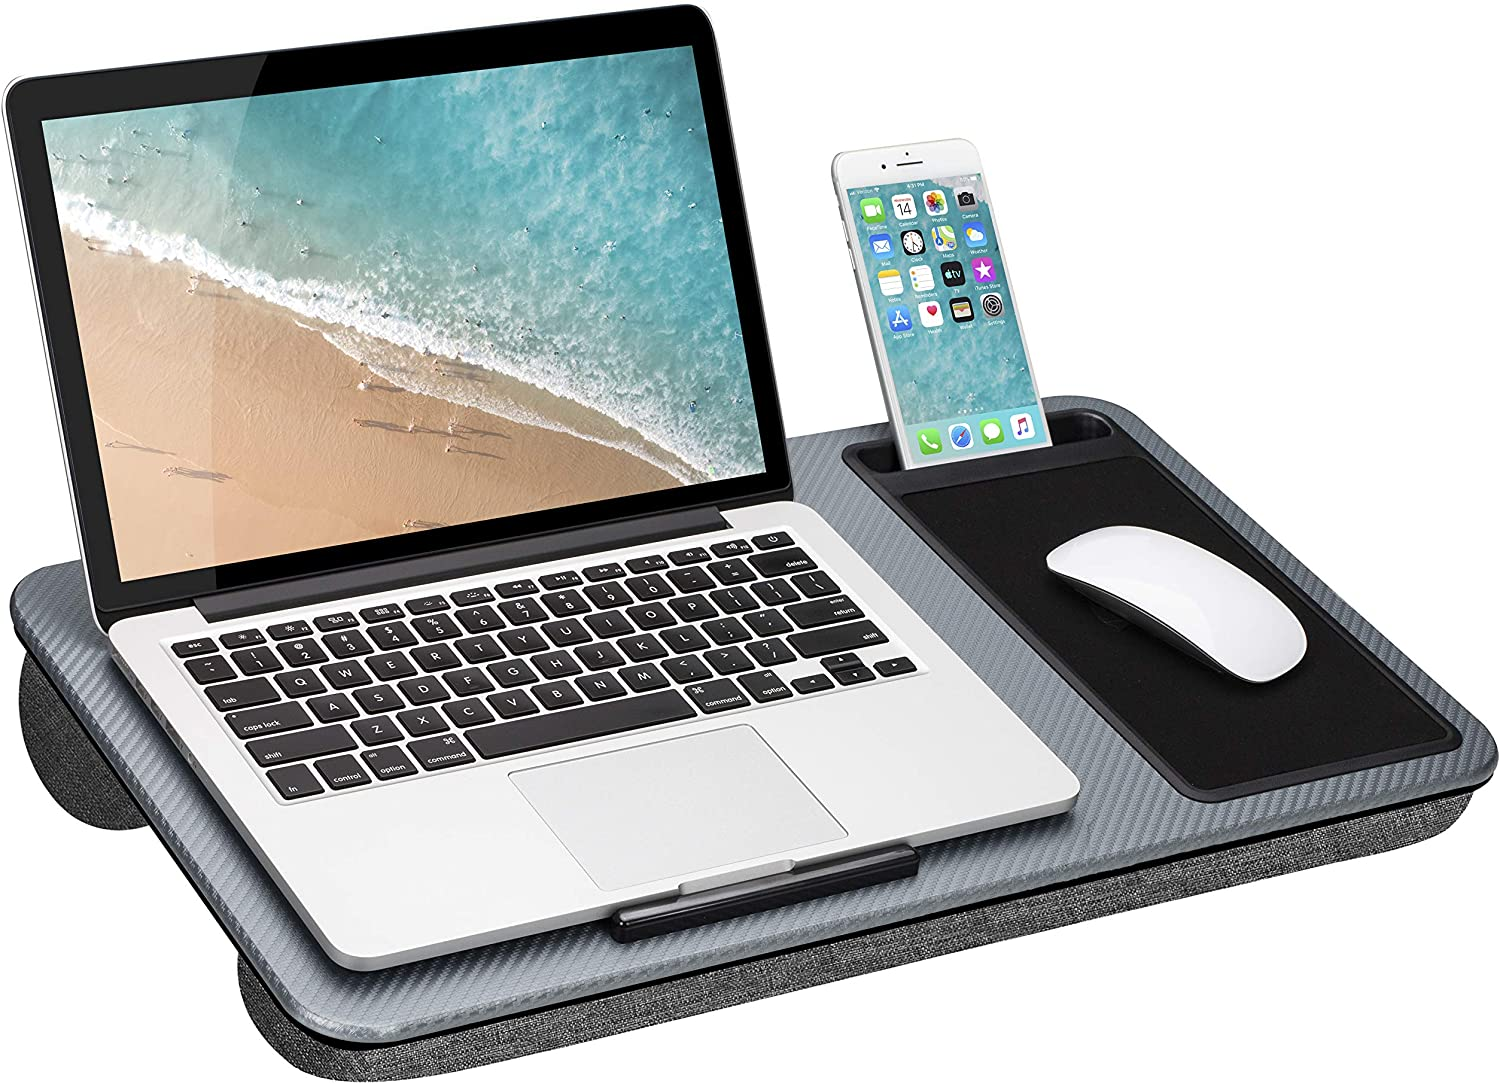 LapGear Home Office Lap Desk with Device Ledge, Mouse Pad, and Phone Holder - Silver Carbon - Fits Up to 15.6 Inch Laptops - Style No. 91585 : Office Products